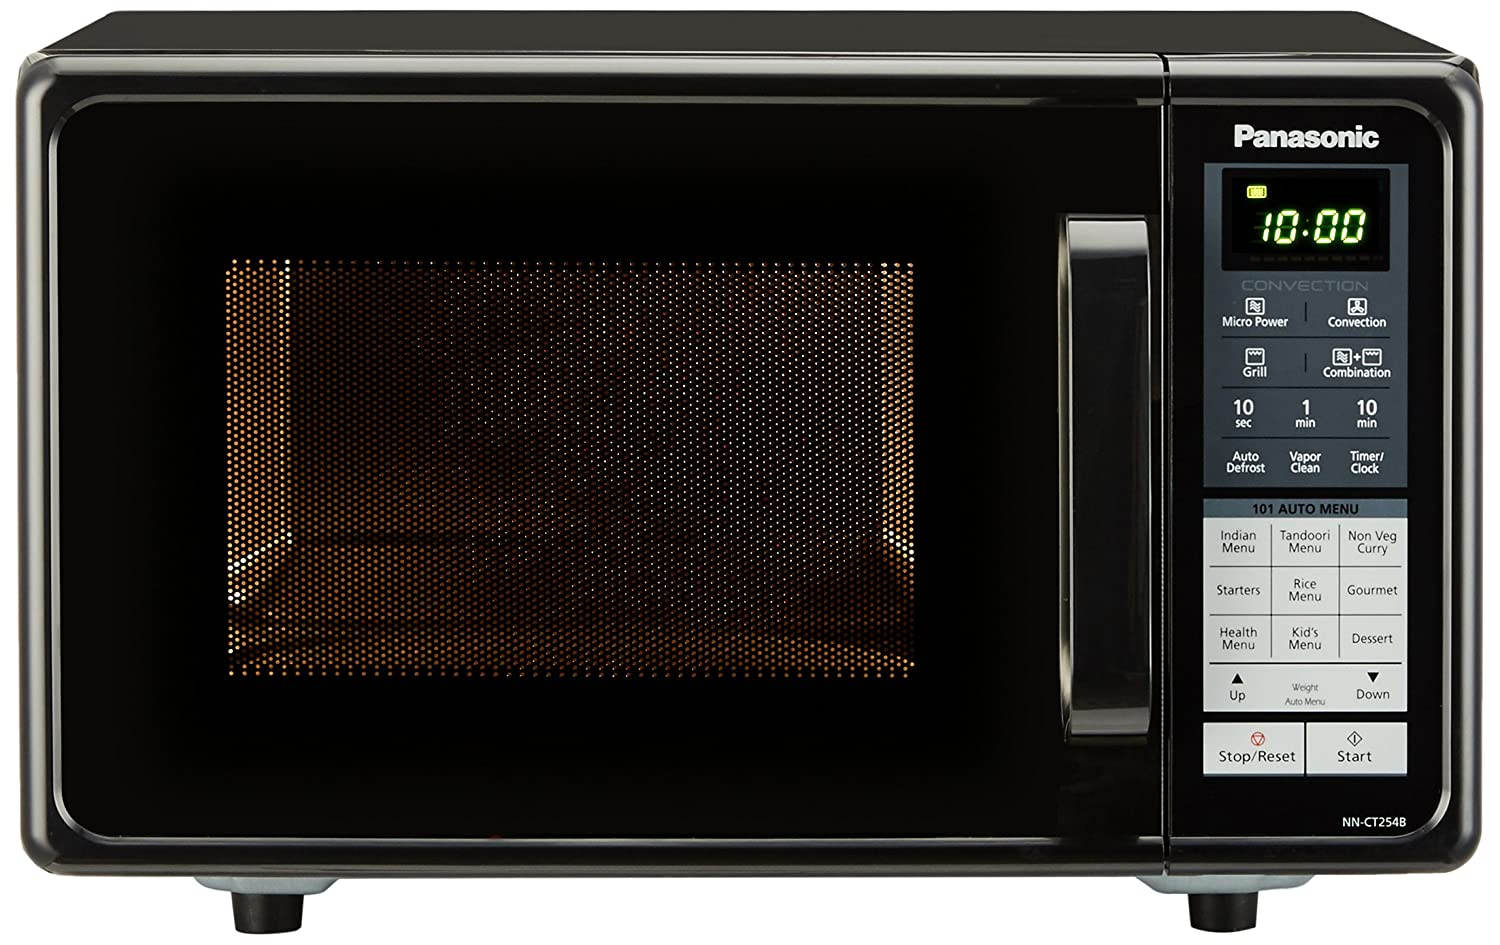 Best Microwave Oven Under 10000 In India : Microwave Oven below 1000